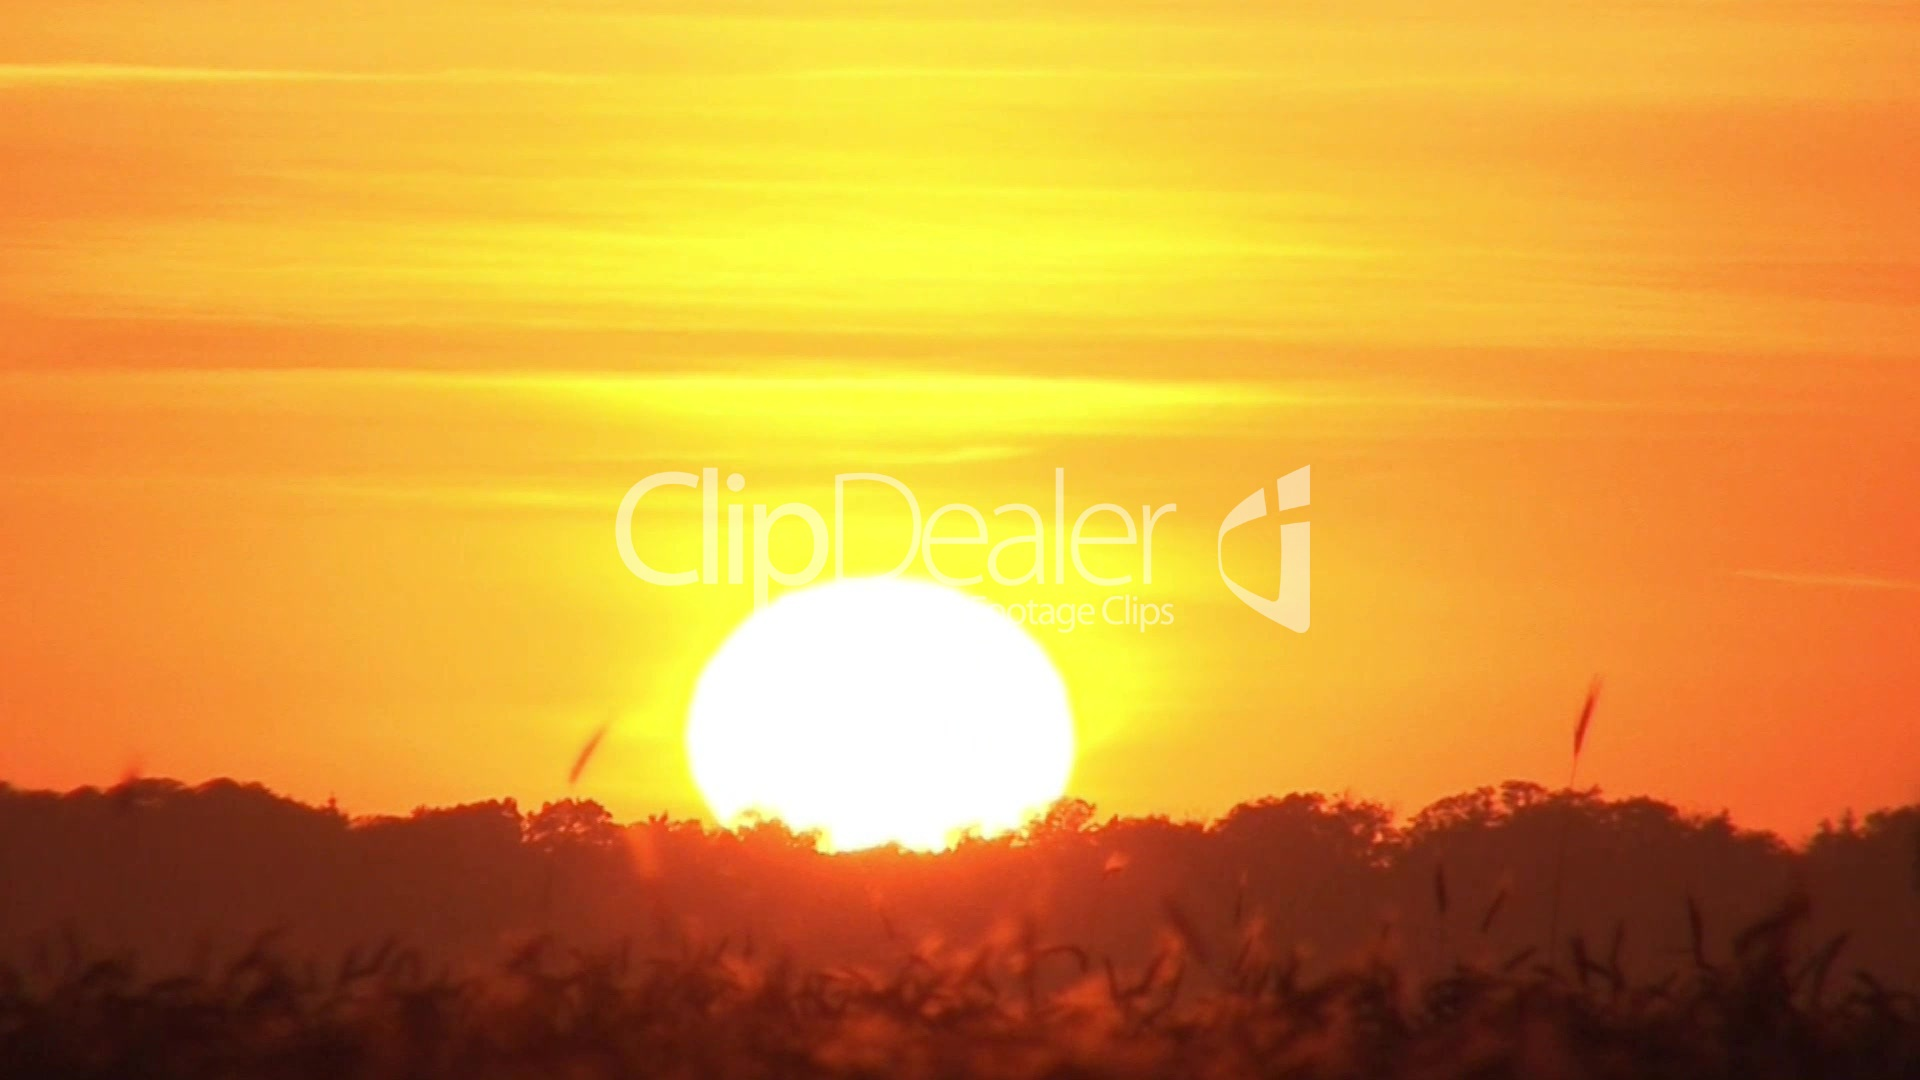 Sonnenuntergang: Royalty-free video and stock footage